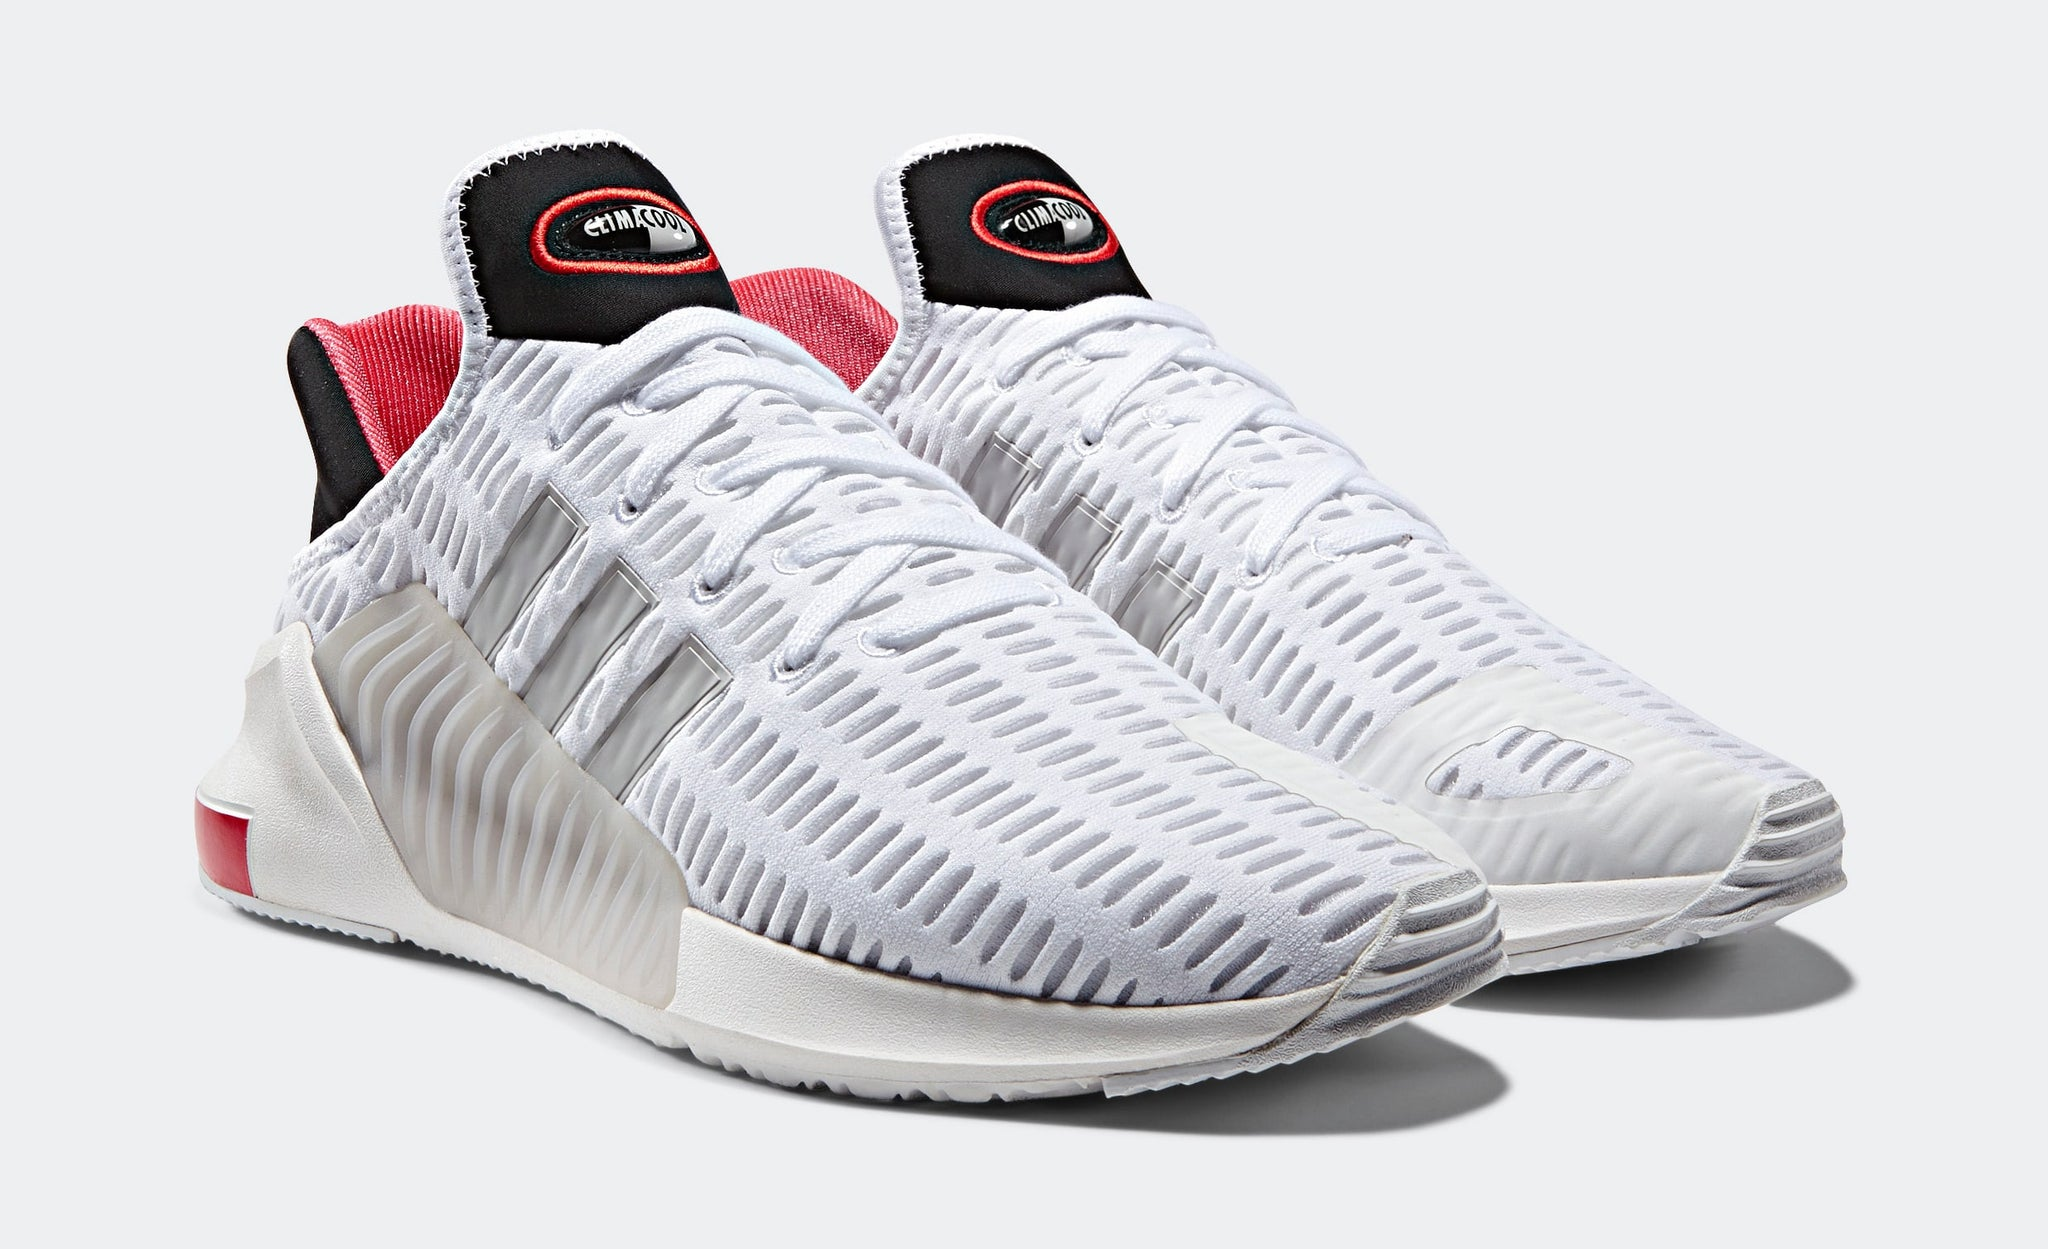 super popular c2e13 acd6f ADIDAS CLIMACOOL 02/17 - BB Branded Boutique